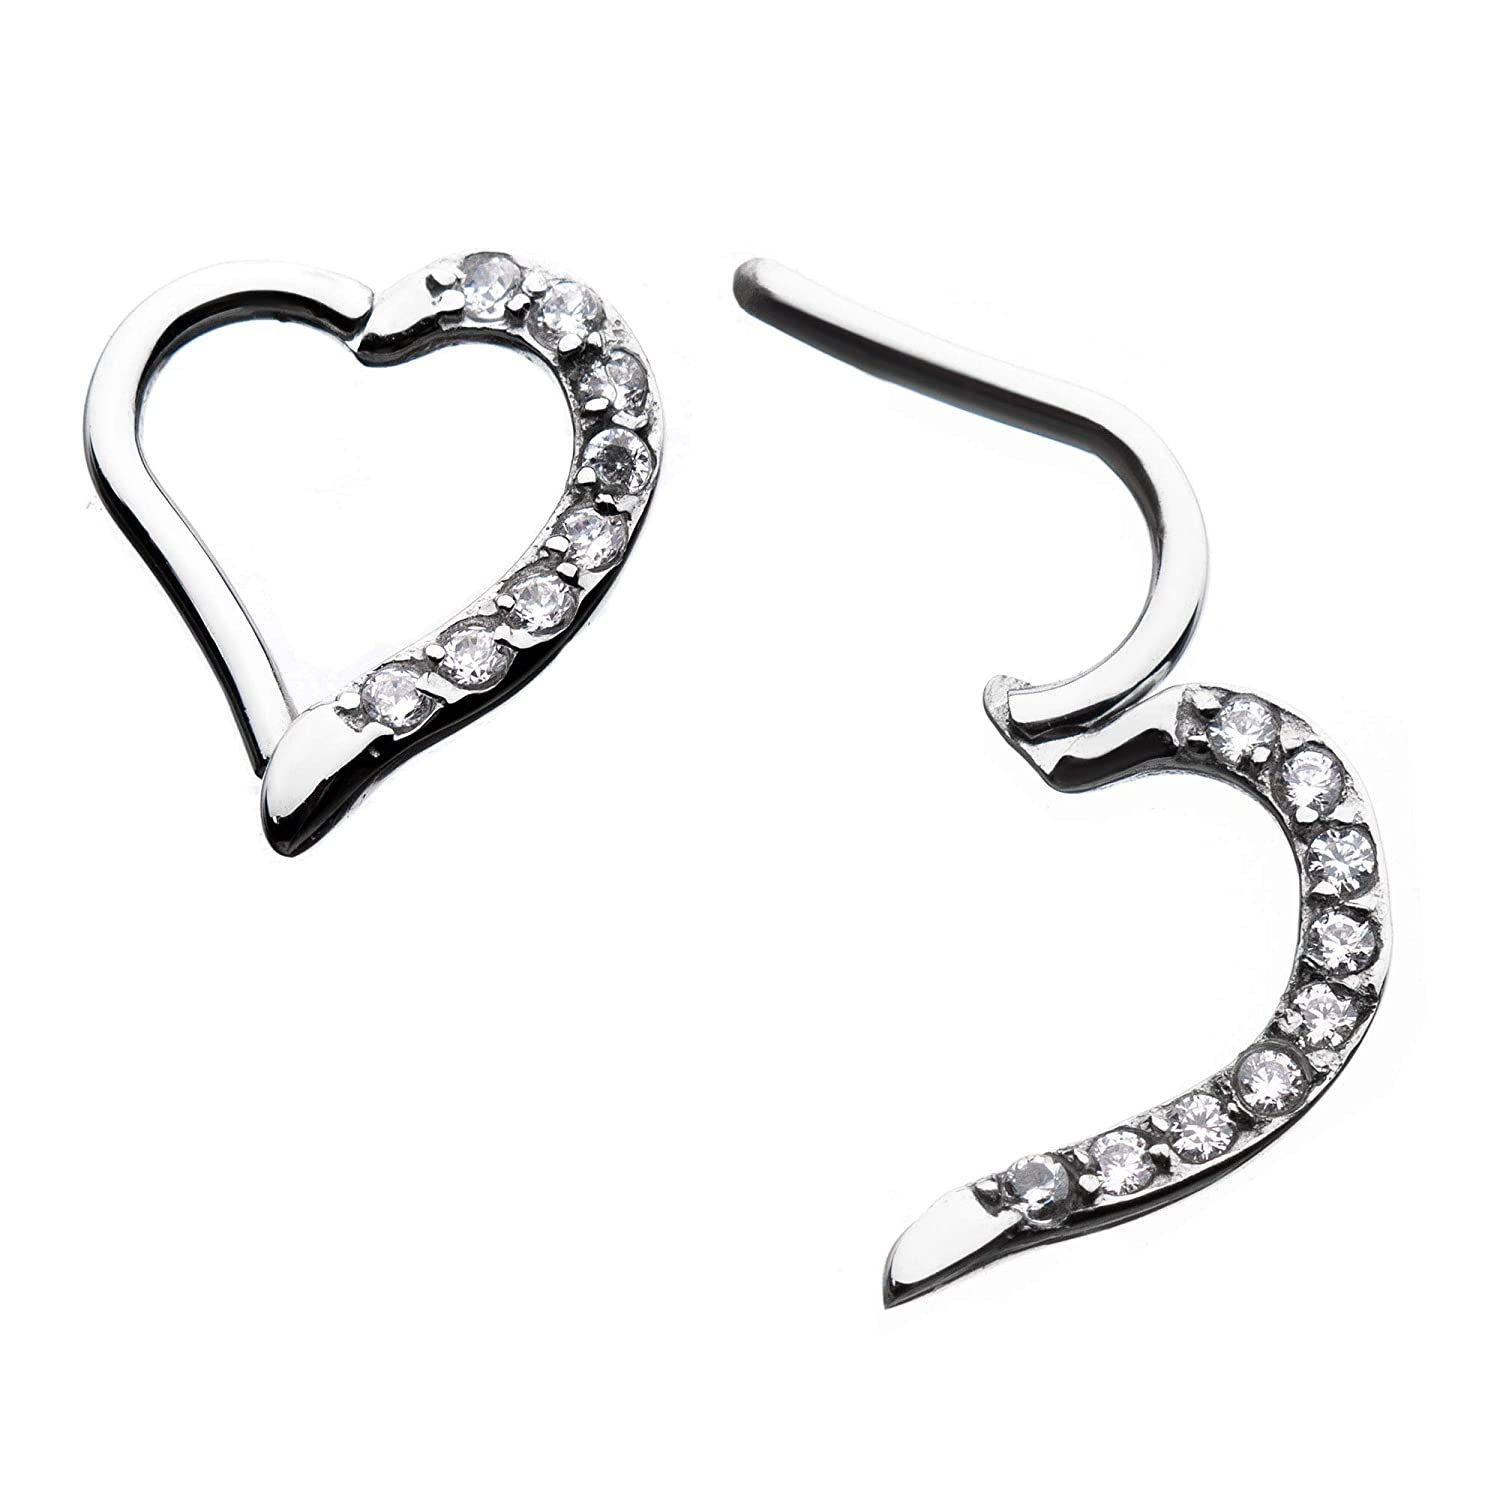 GranTodo 316 Surgical Steel 16g Right Heart Shape Hinged Segment Rings with Clear CZ Gem